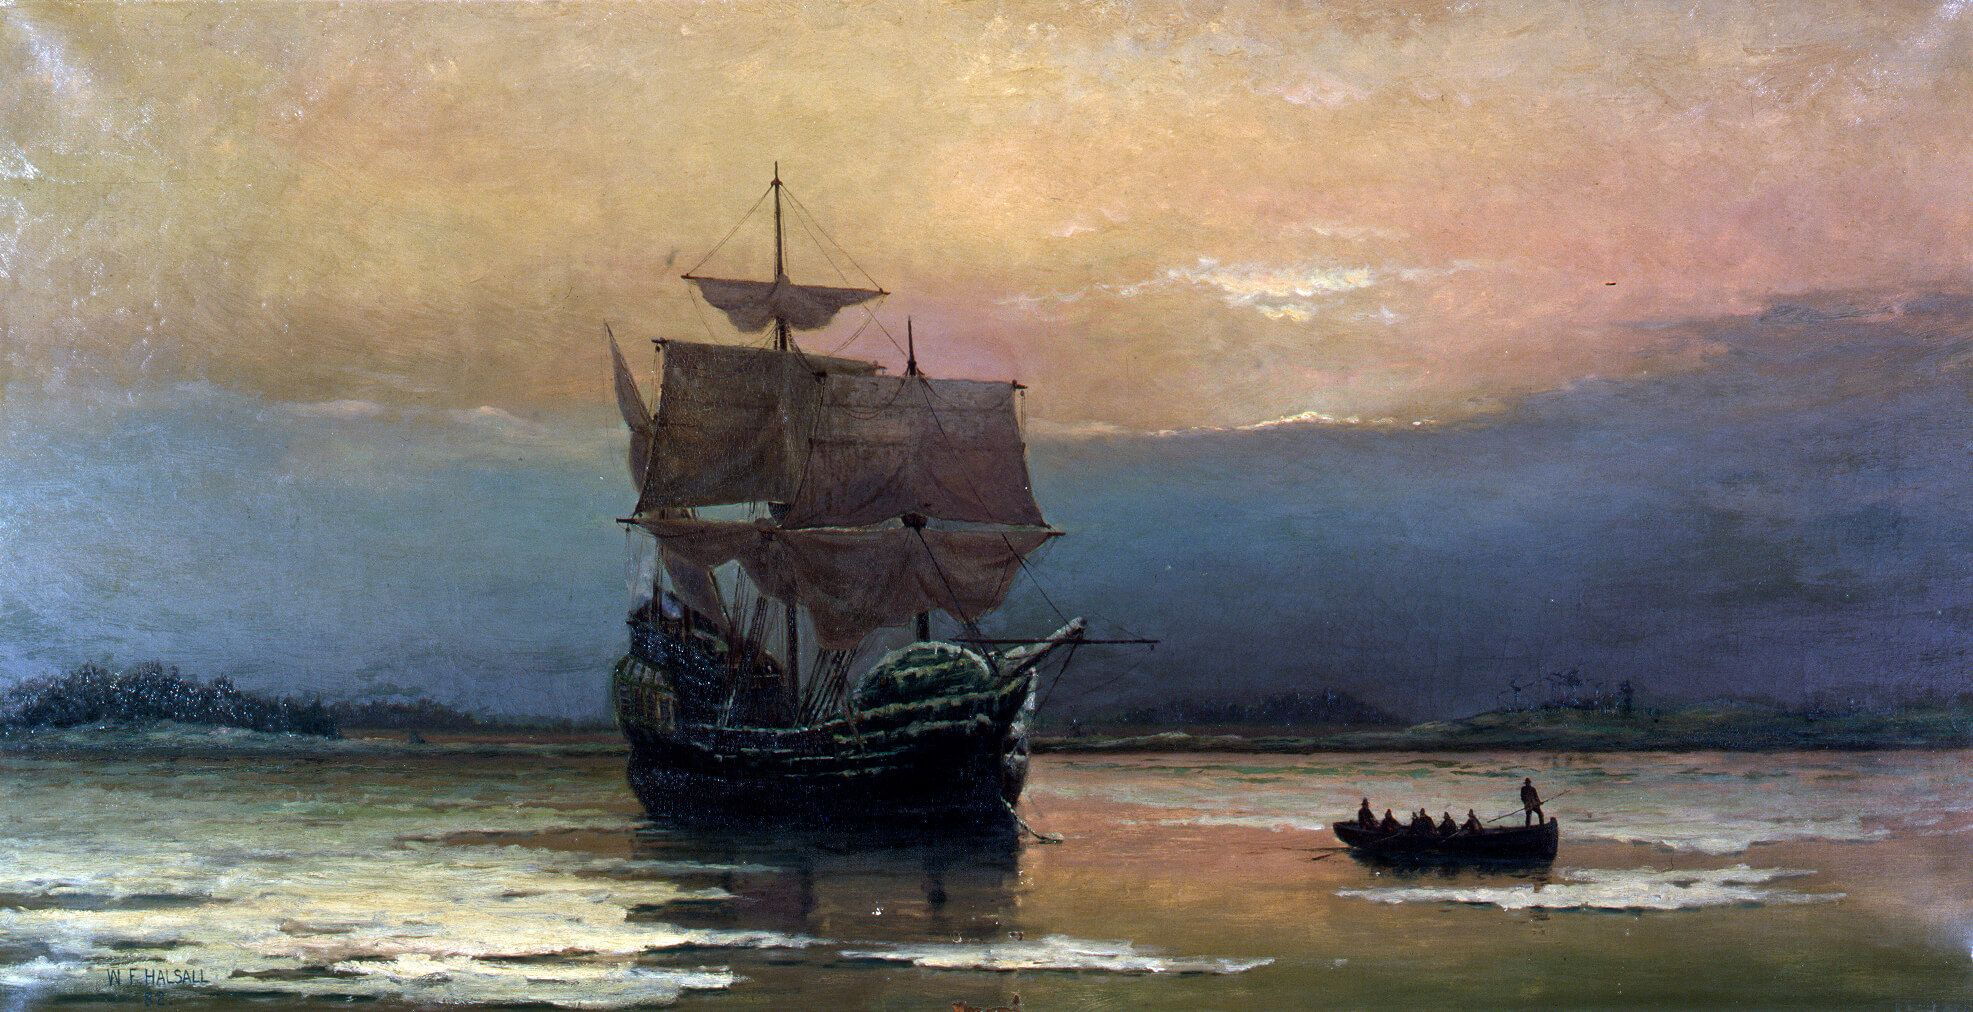 From the Mayflower to Massachusetts Bay: Colonial America V